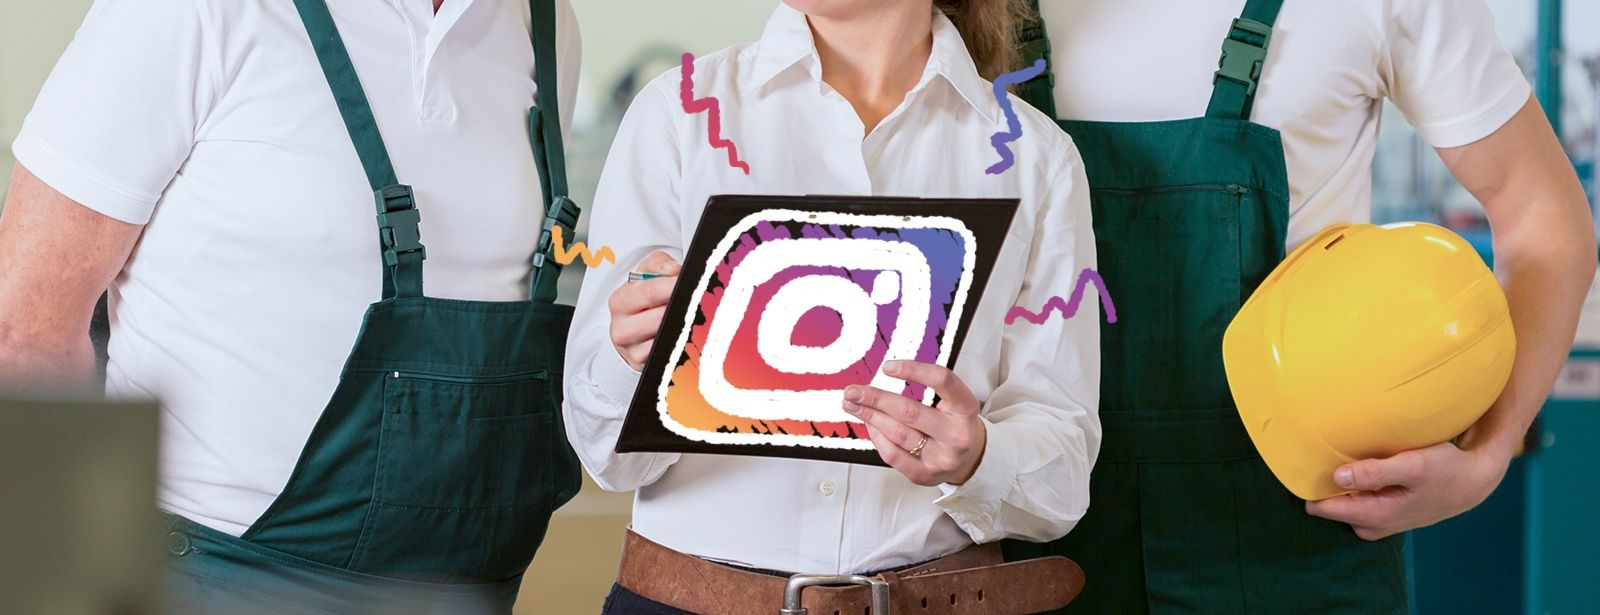 How Manufacturing Companies Can Leverage Instagram.jpg